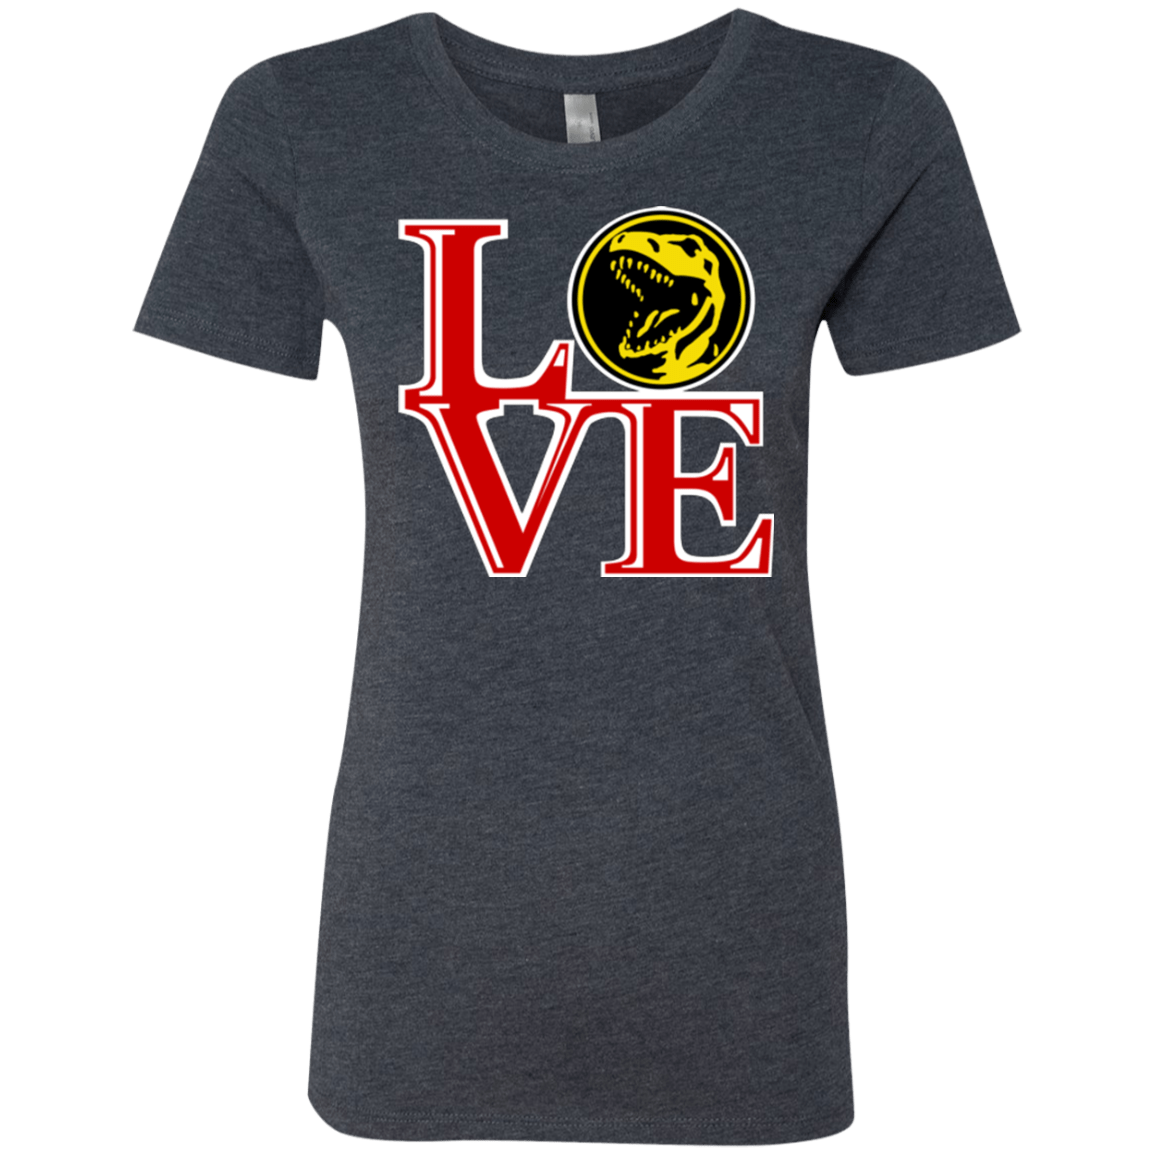 T-Shirts Vintage Navy / Small Red Ranger LOVE Women's Triblend T-Shirt